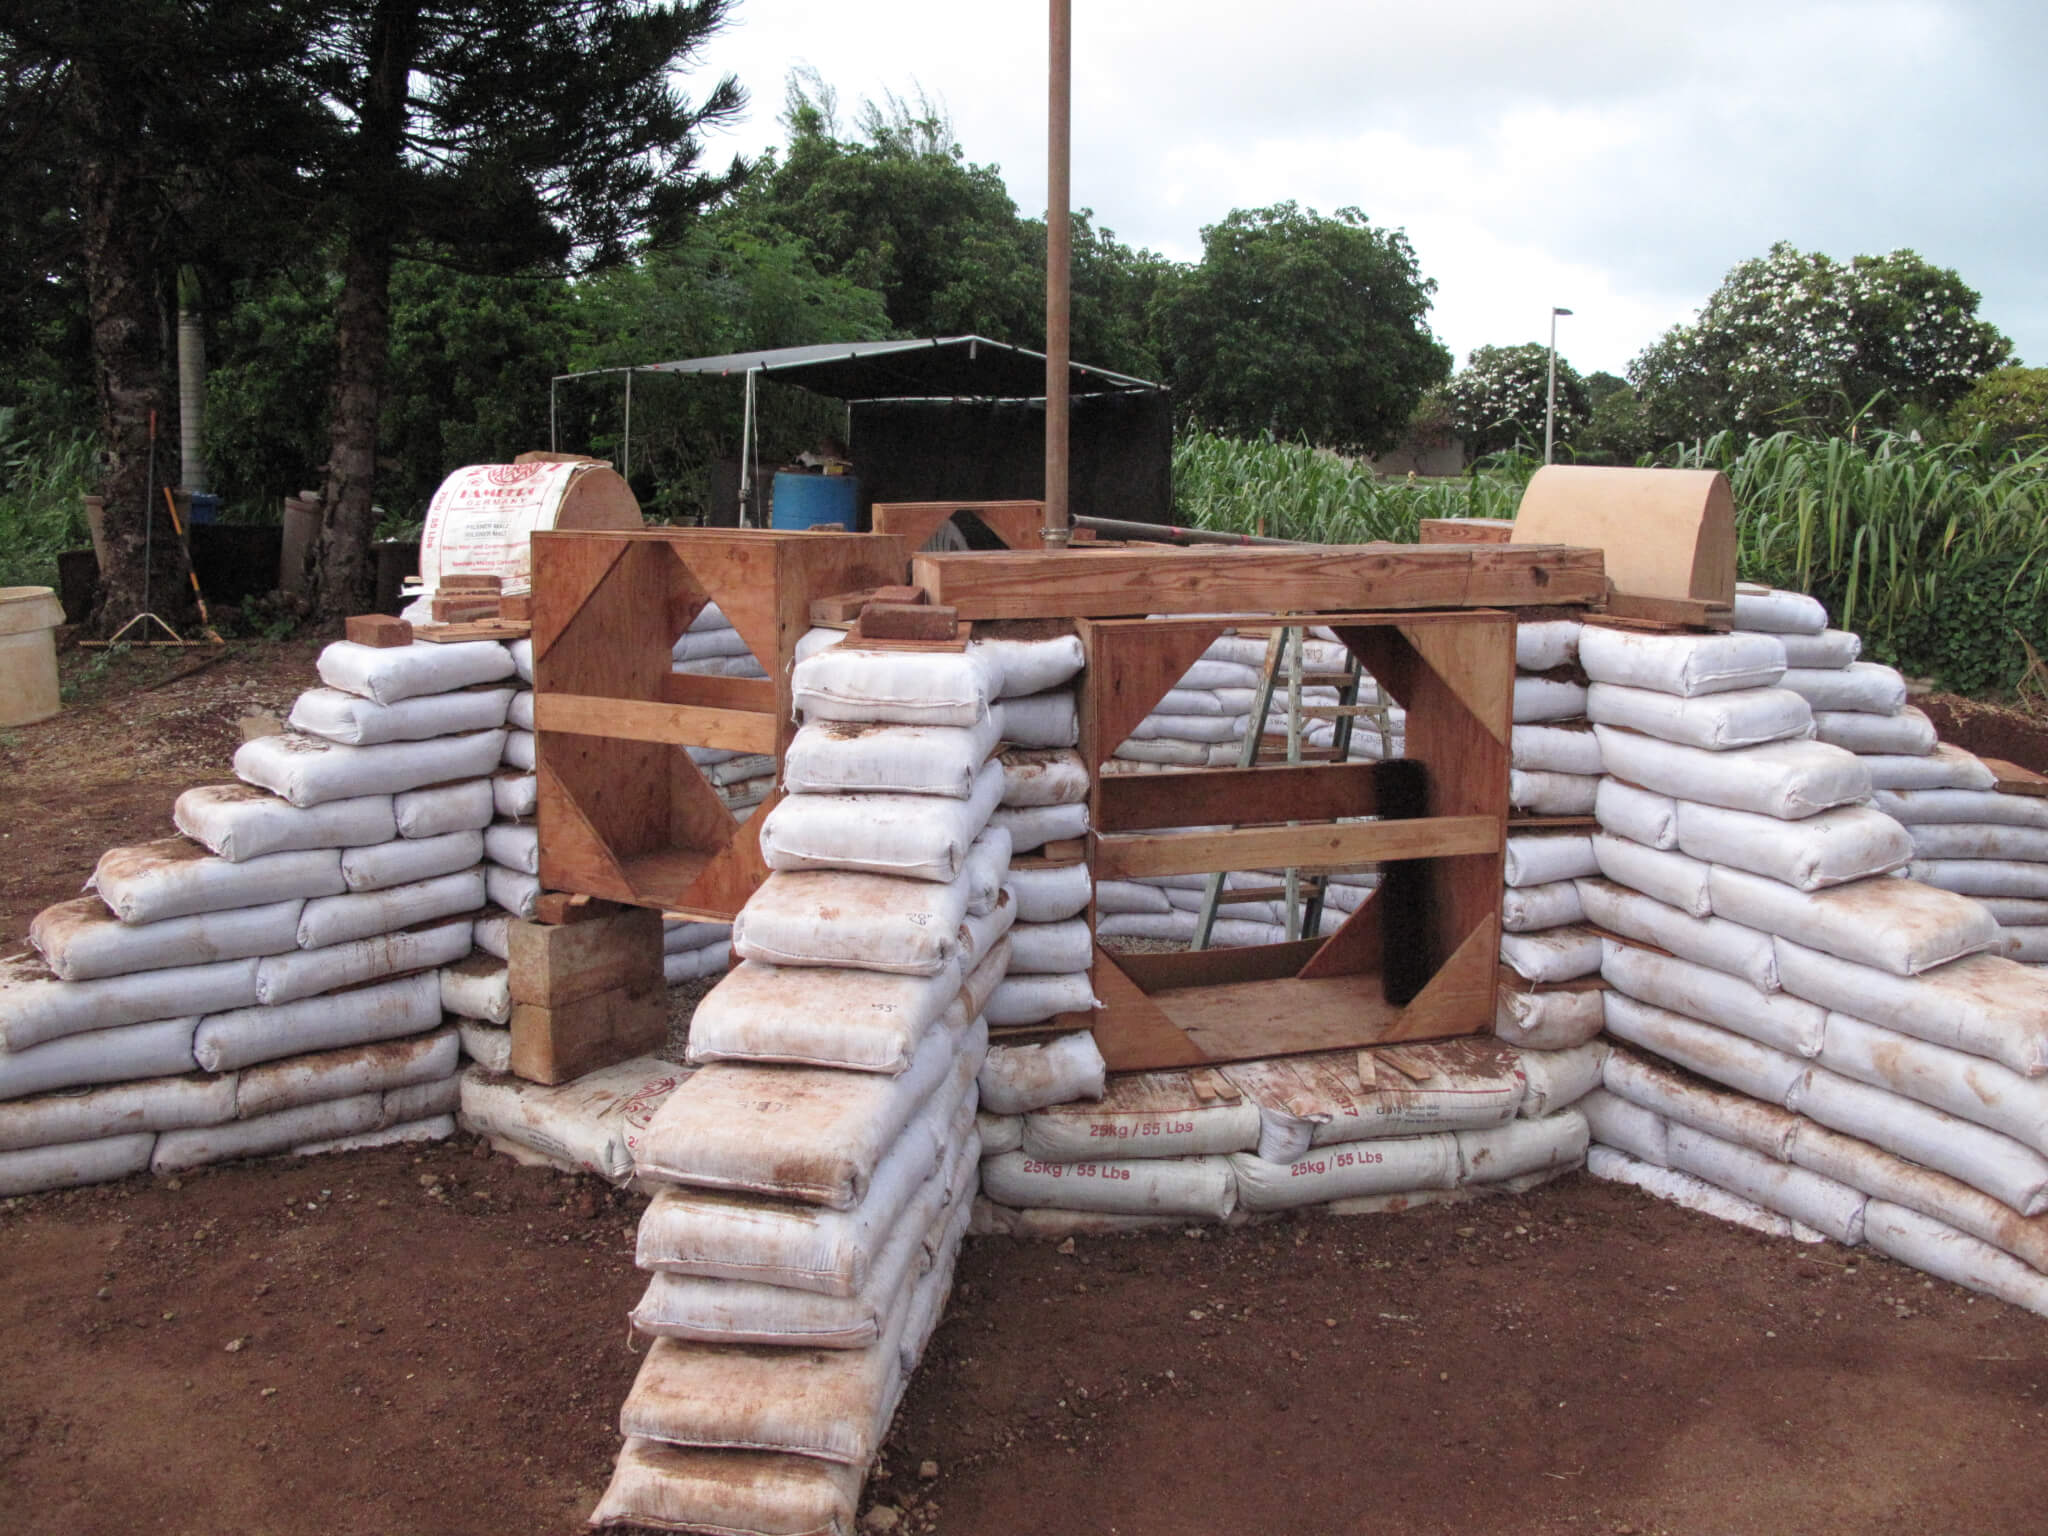 earthbag dome with buttresses and lintels in place